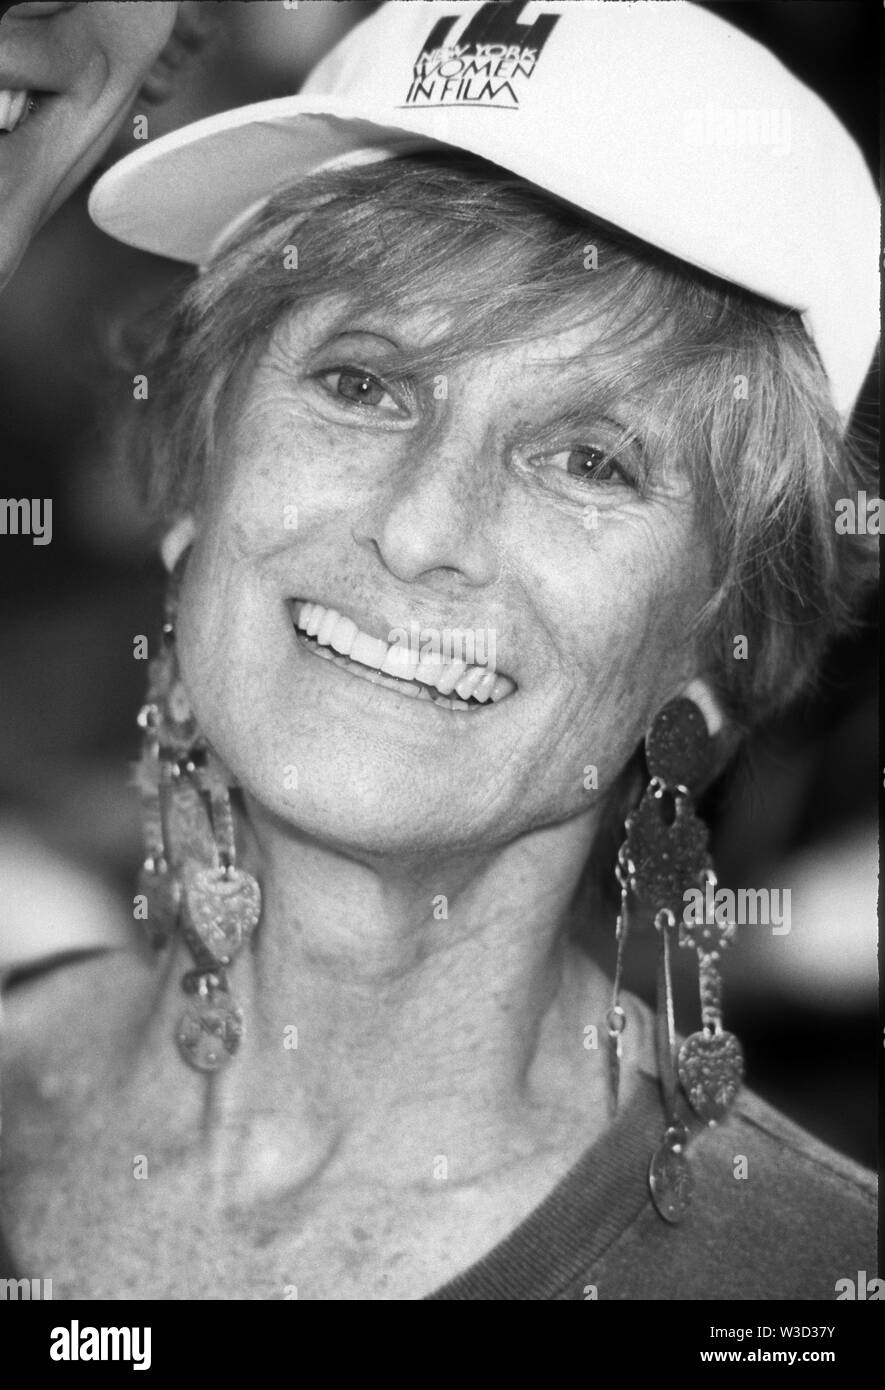 Cloris Leachman Stock Photos & Cloris Leachman Stock Images - Alamy